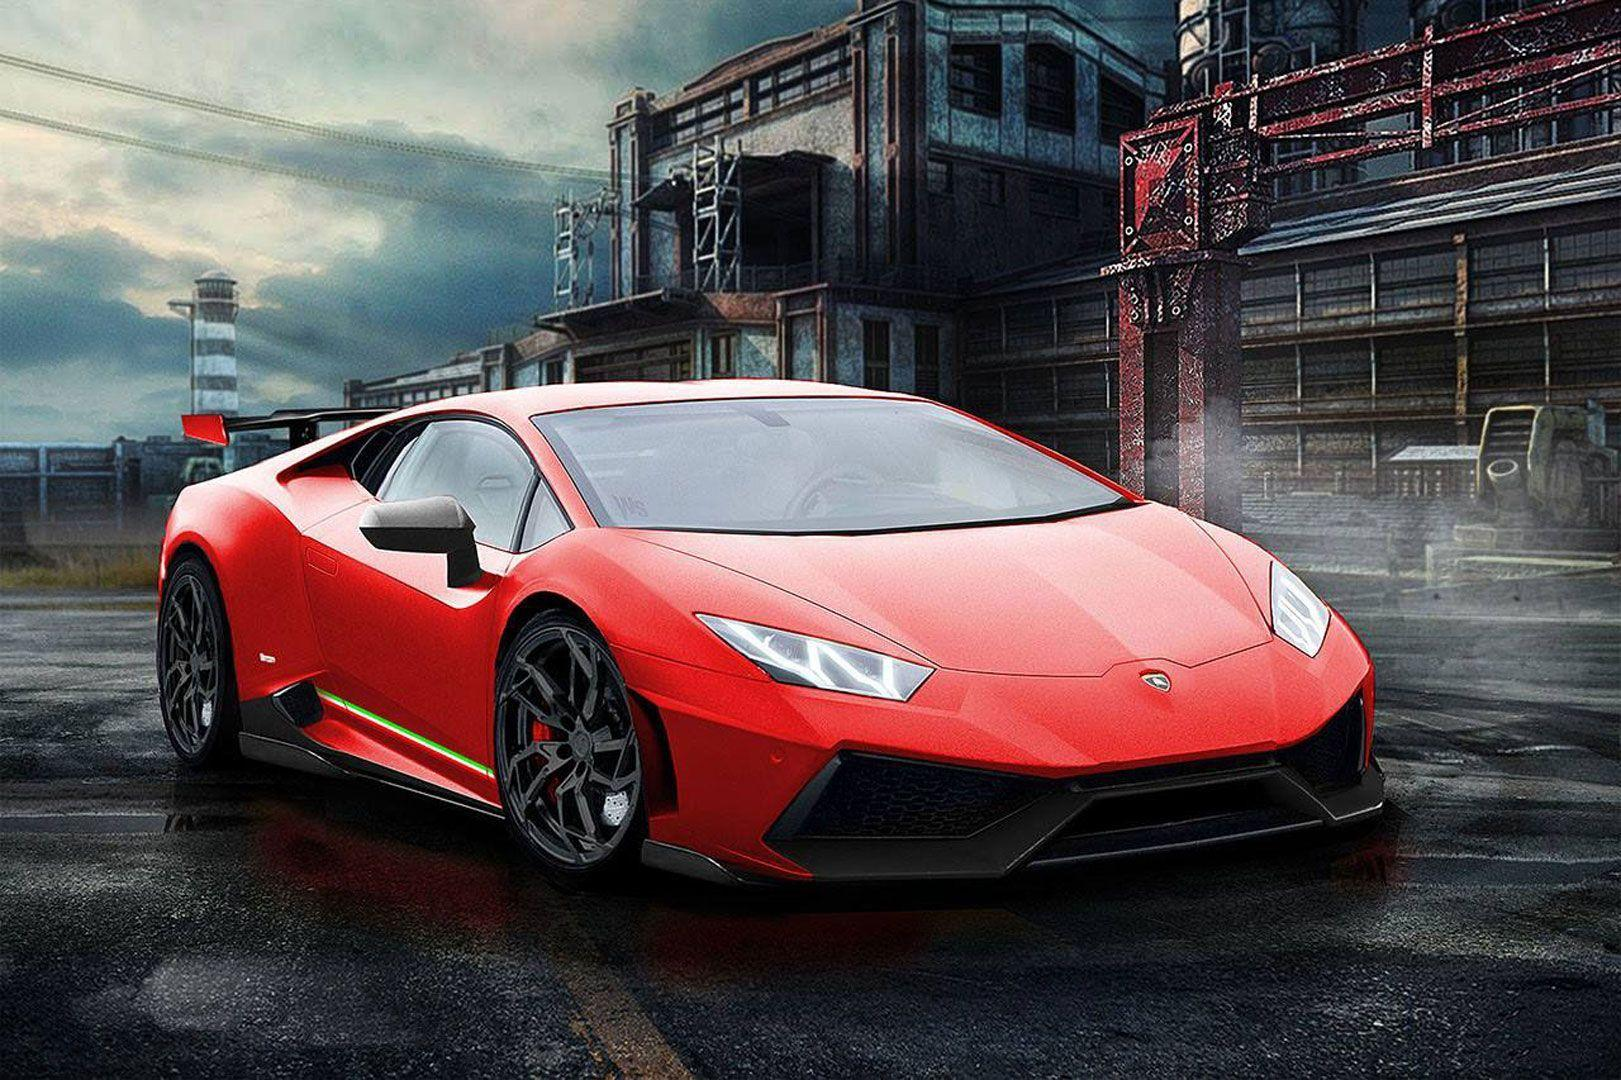 Wallpapers Full Hd 1080p Lamborghini New 2015 Wallpaper Cave